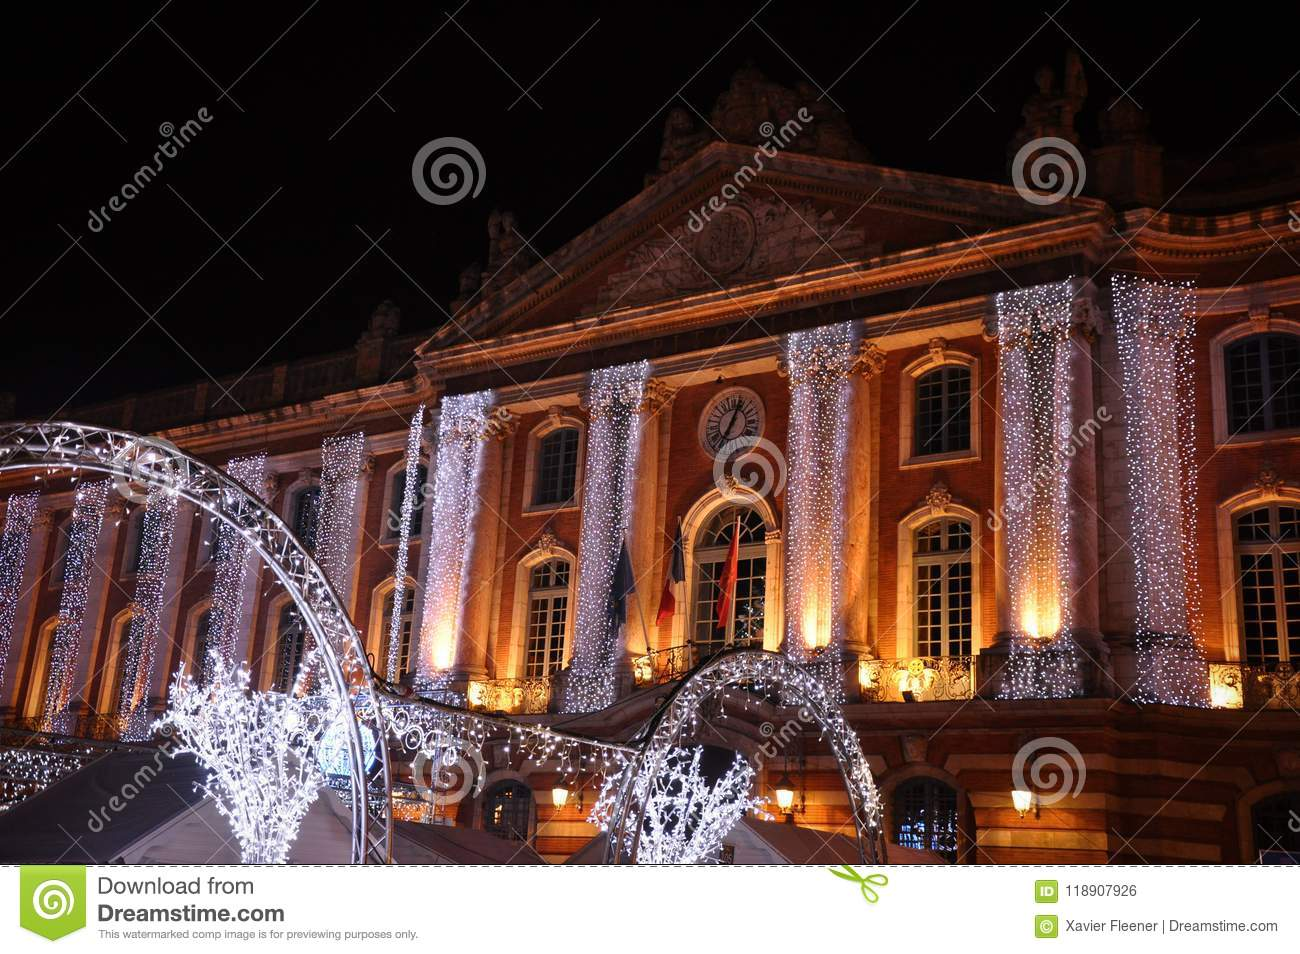 Christmas Lights on the Facade of the Capitol, in Toulouse